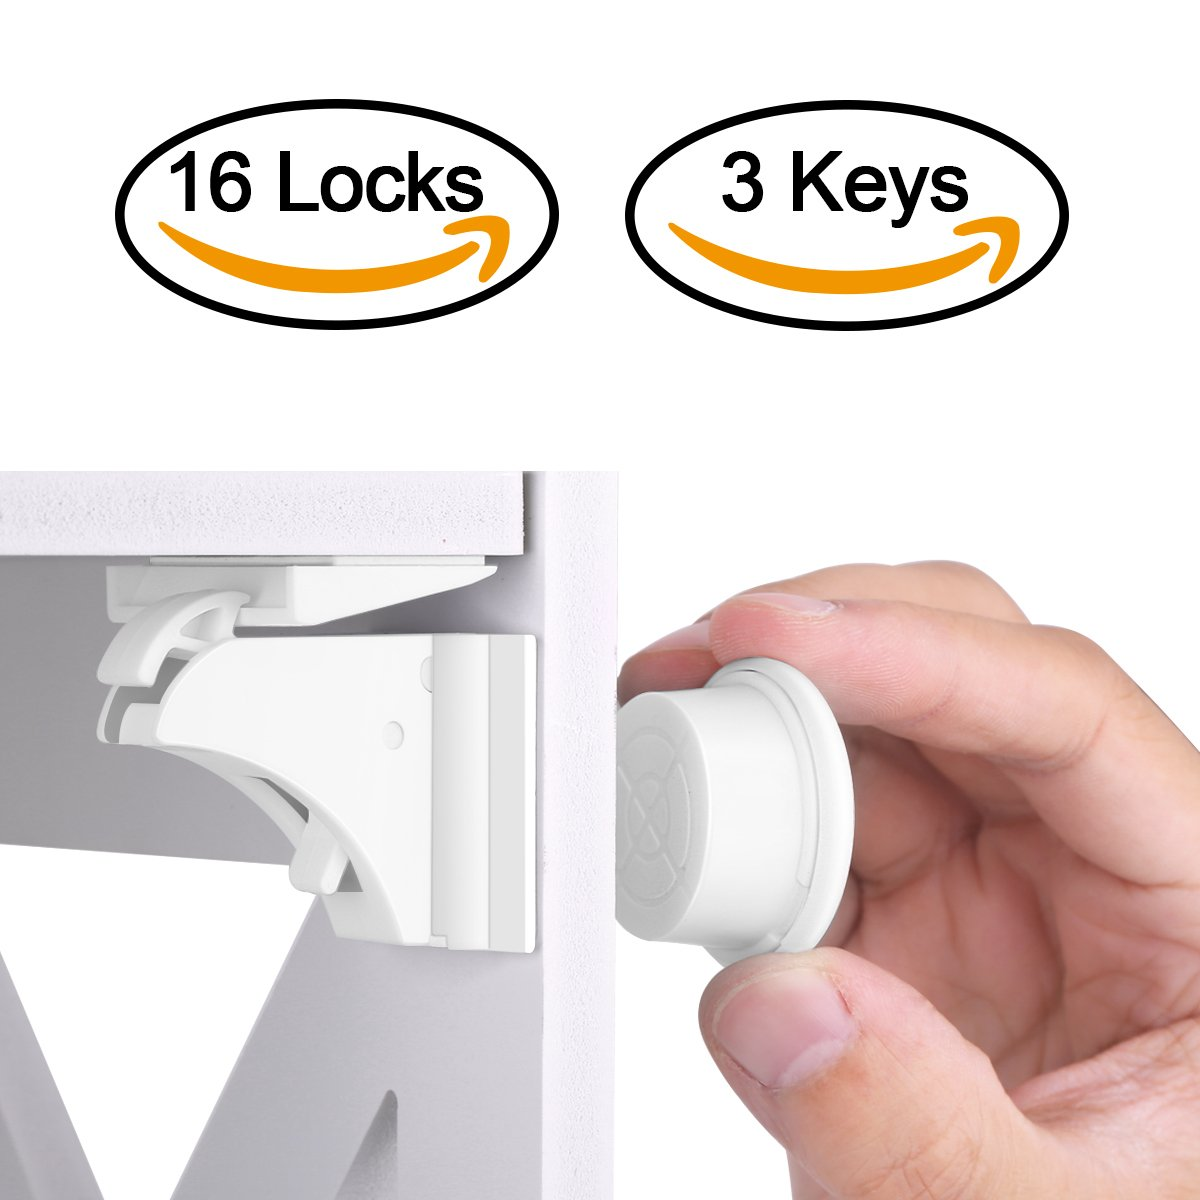 Baby Safety Magnetic Cabinet Lock Set HURRISE Child Safety Locks Kids Toddler Proofing Hidden Cupboard Drawer Locking System No Drilling & Screws (16 Locks & 3 Keys) by HURRISE (Image #1)